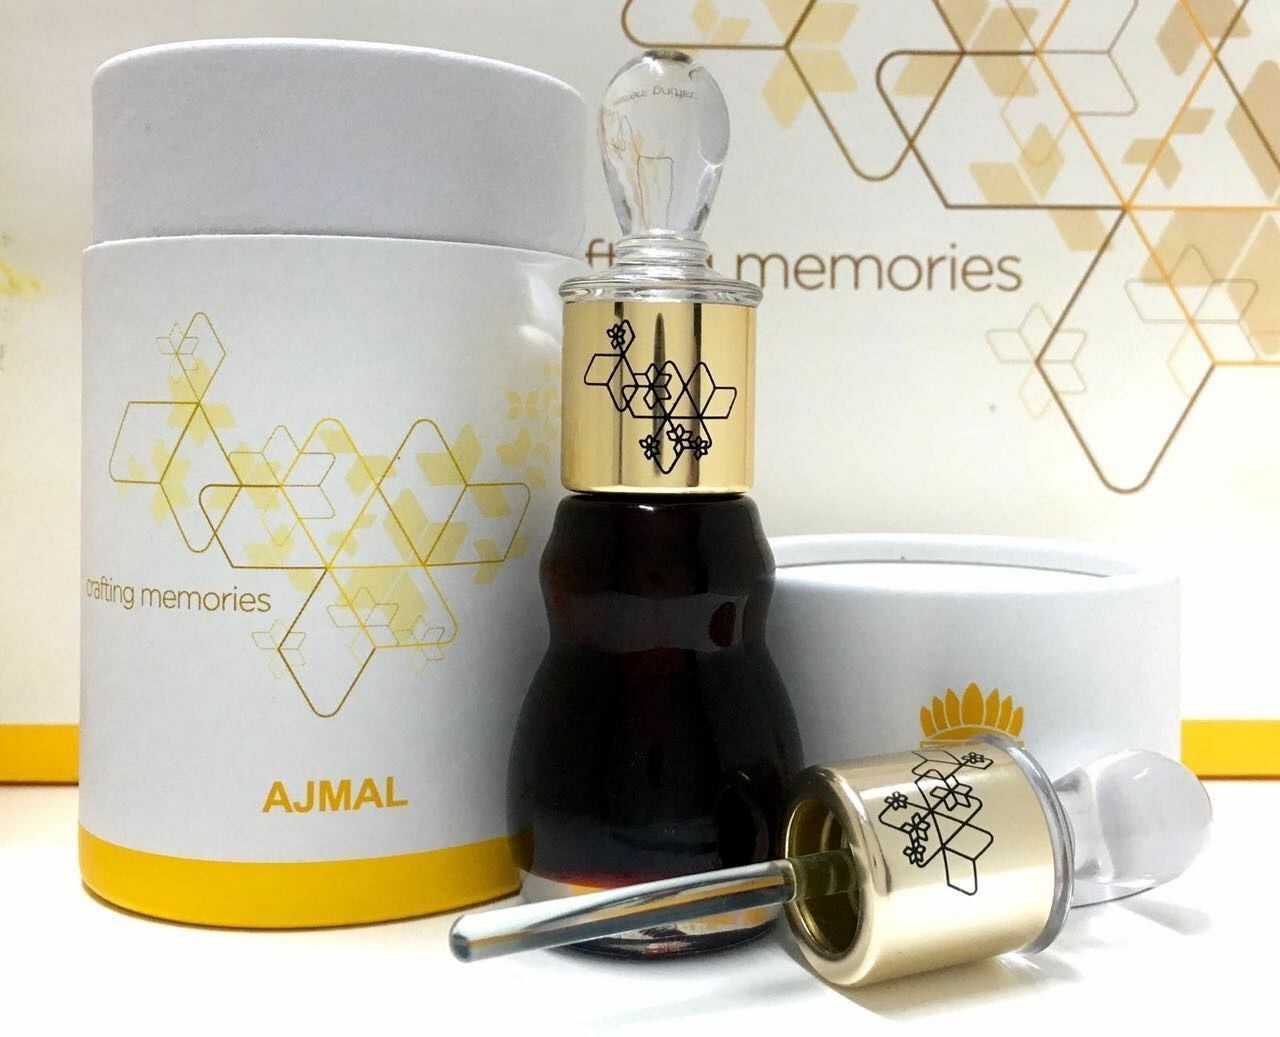 Shamamatul Amber by Ajmal Premium Grade A+ VIP Arabian Perfume Oil - 12ML Bottle